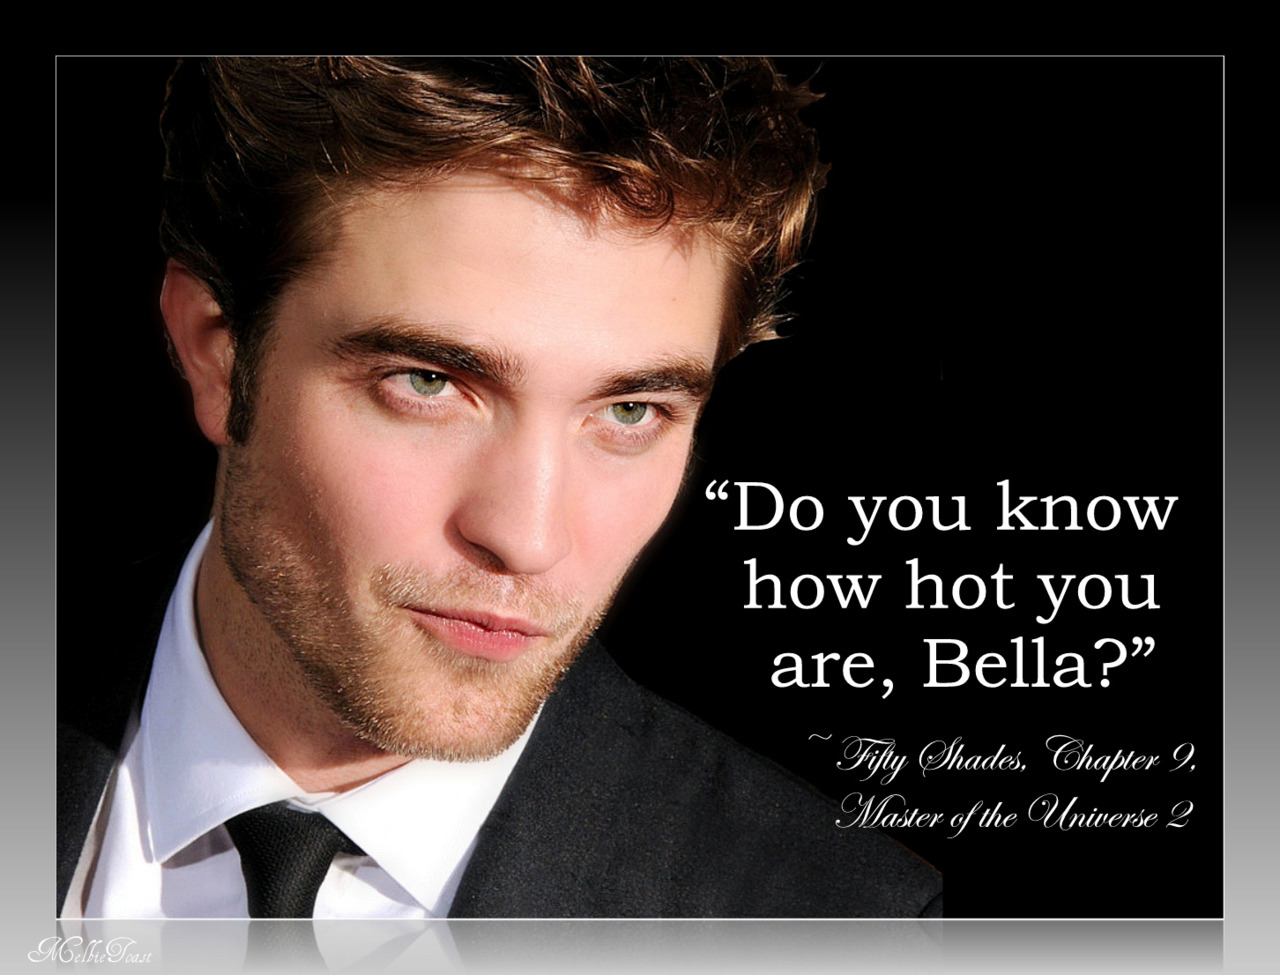 "melbietoast:  ""Do you know how hot you are, Bella?"" he whispers hoarsely as he rocks against me harder.  ~ Fifty Shades, Chapter 9, Master of the Universe Part II, by Snowqueens IceDragon www.50shades.com"